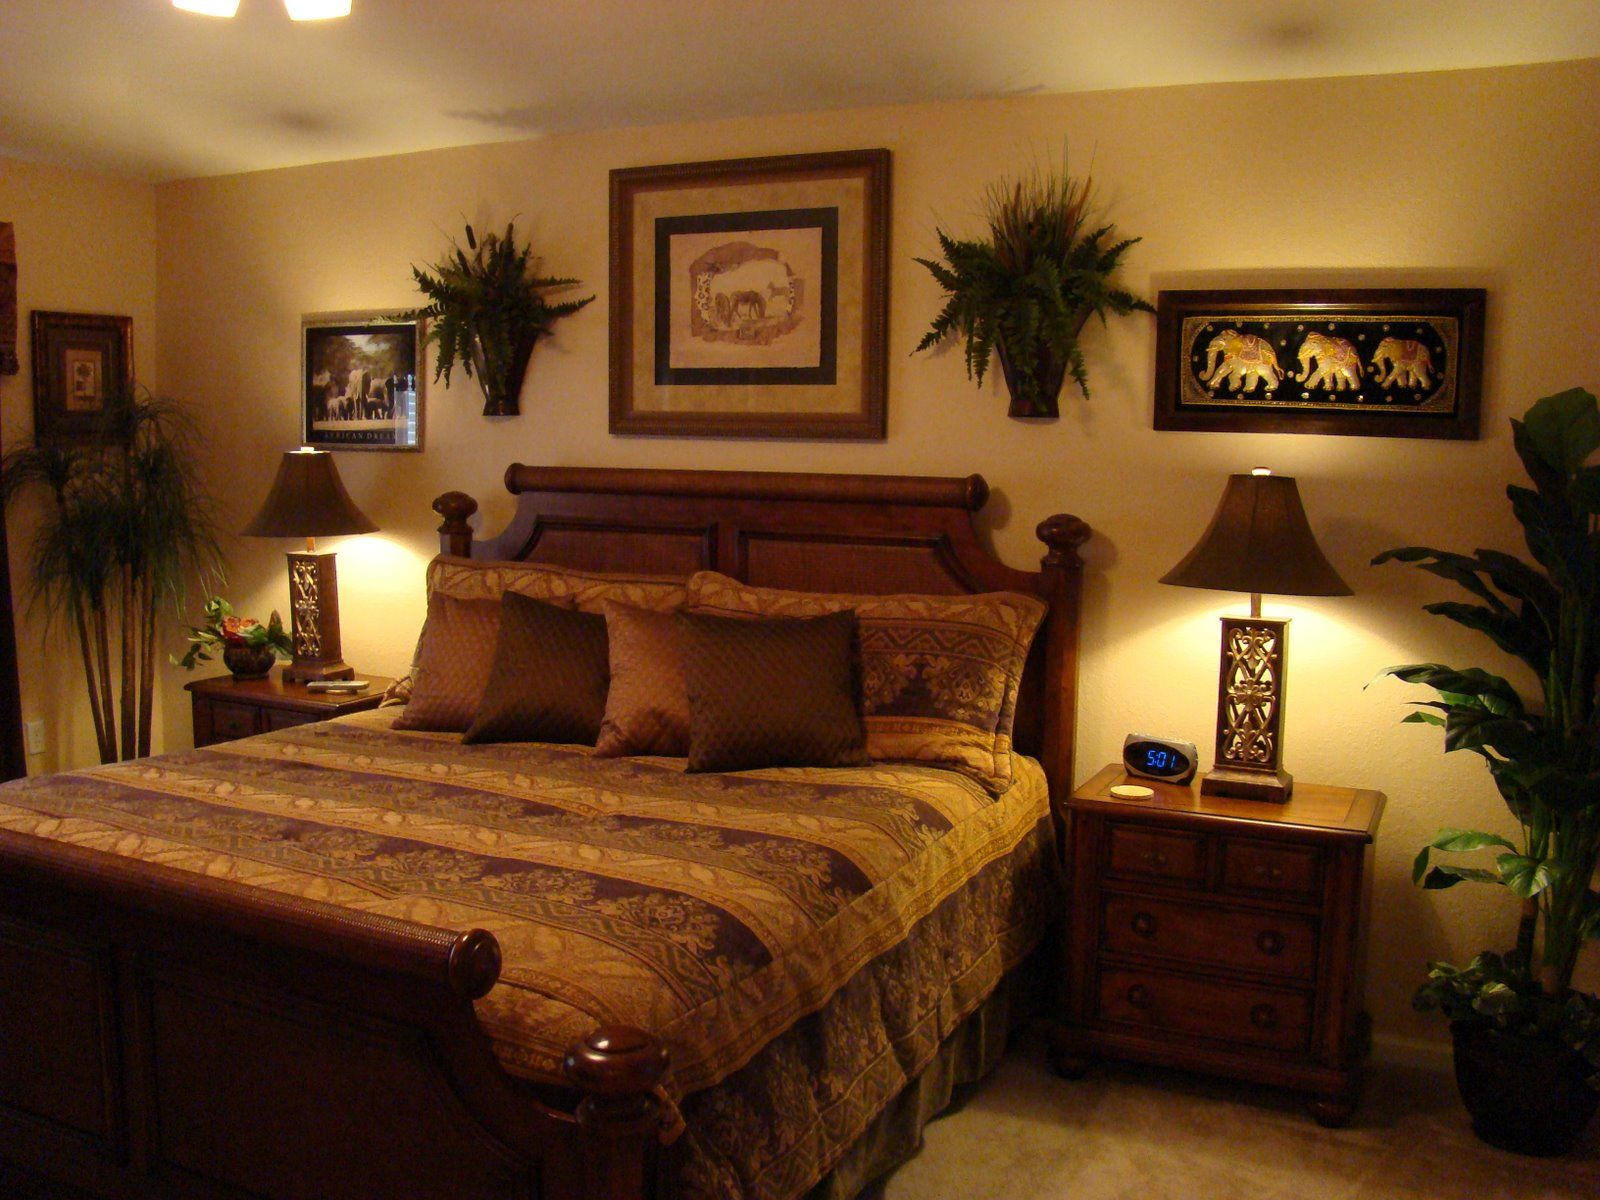 Top ten tourist attractions in kenya master bedroom for Master bedroom design ideas